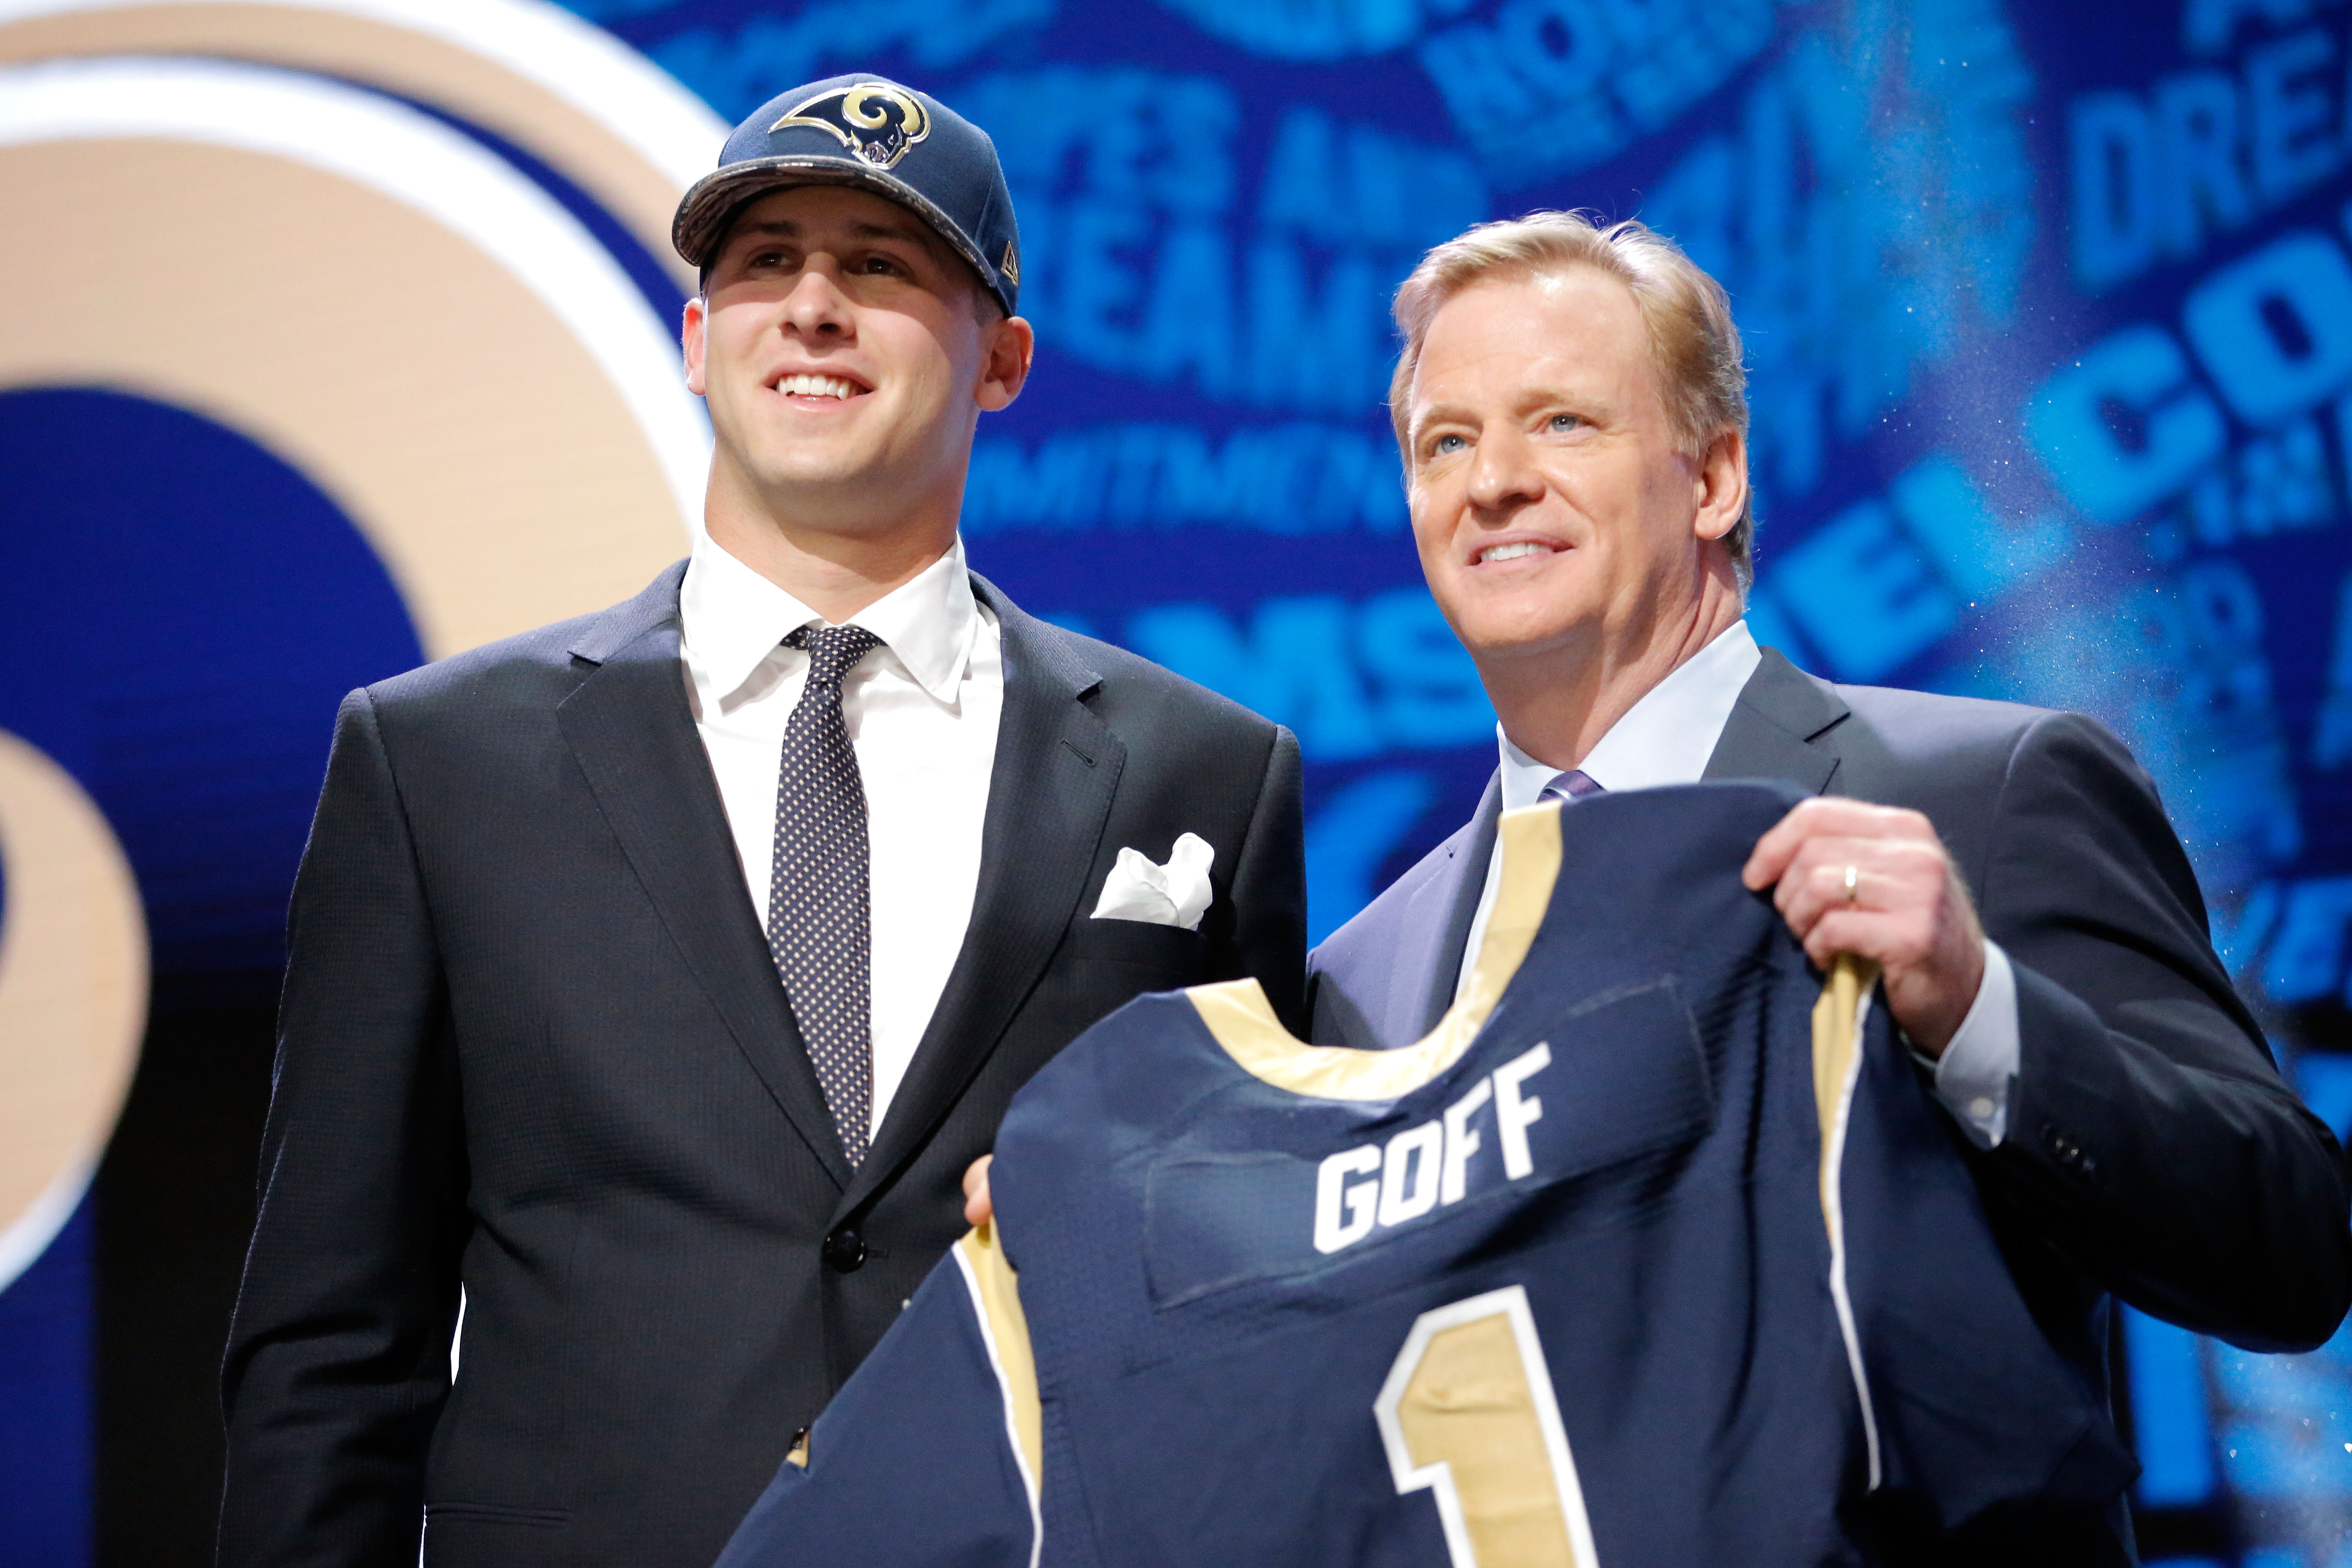 Los Angeles Rams QB Jared Goff and NFL Commissioner Roger Goodell